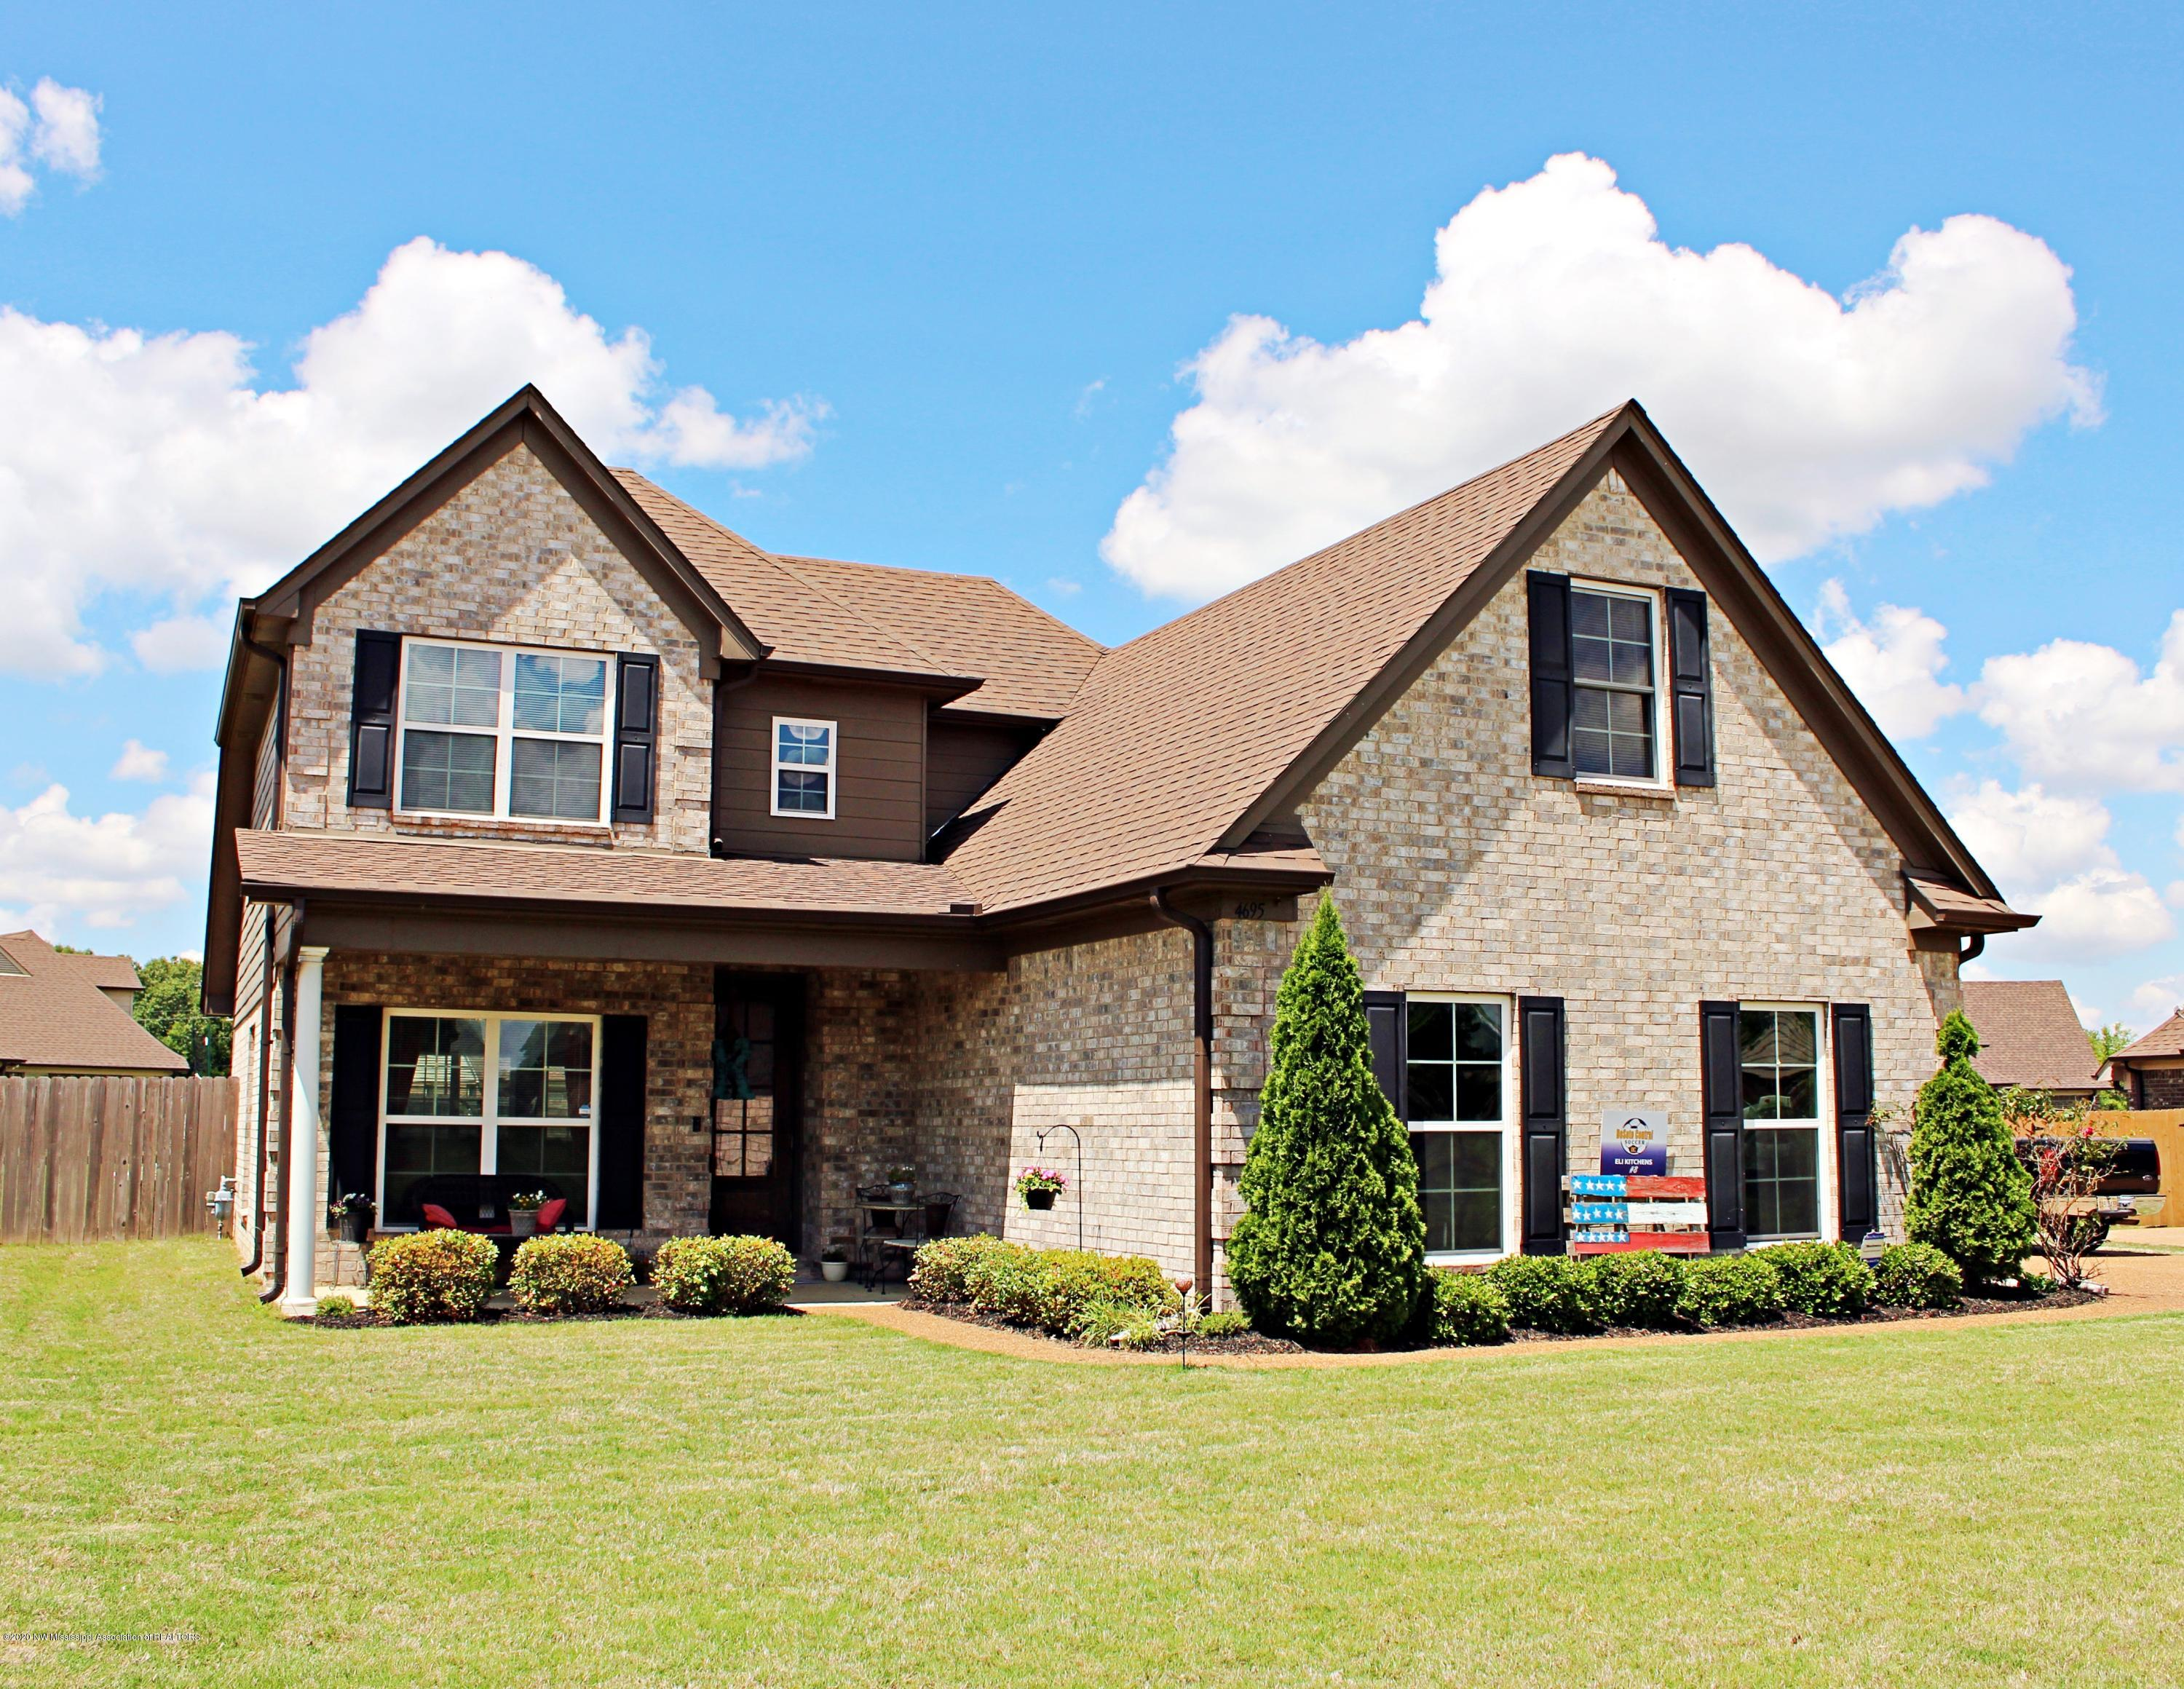 4695 Dublin, Olive Branch in DeSoto County, MS 38654 Home for Sale